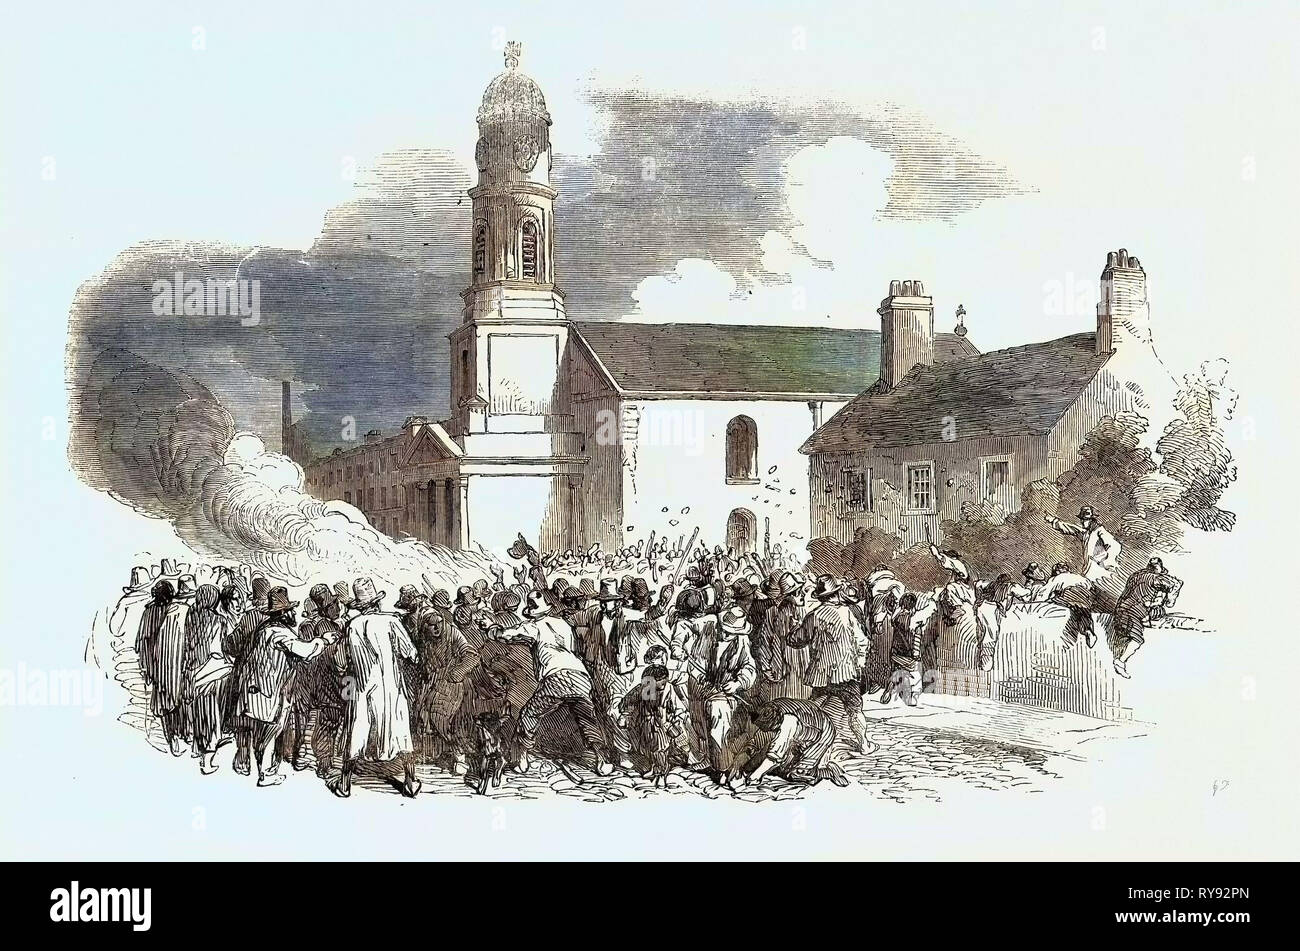 The Riot at Stockport: The Roman Catholic Chapel of Saints Philip and James, Edgeley, 1852 - Stock Image